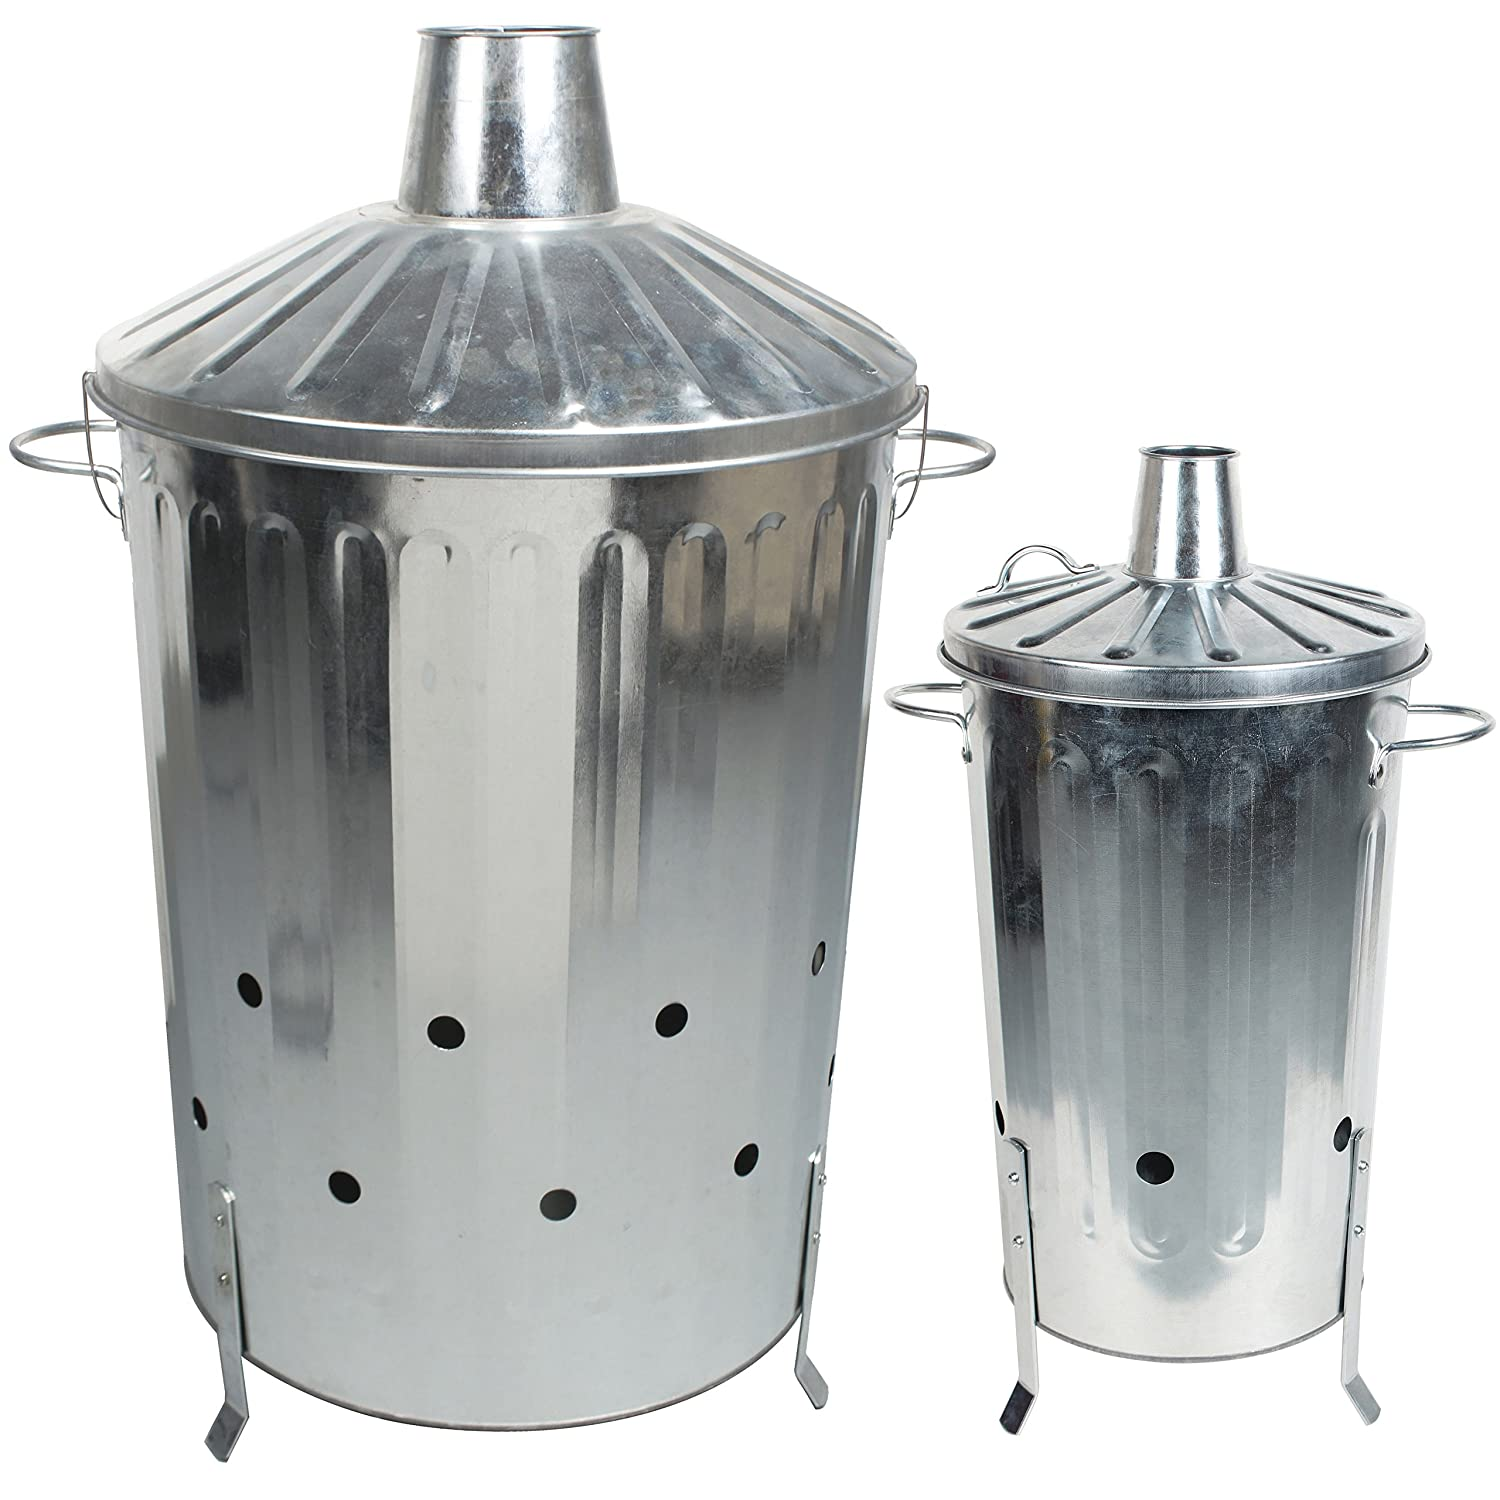 CrazyGadget 90 Litre 90L Extra Large Galvanised Metal Incinerator Fire Burning Bin with Special Locking Lid + 18L Small Incinerator Set